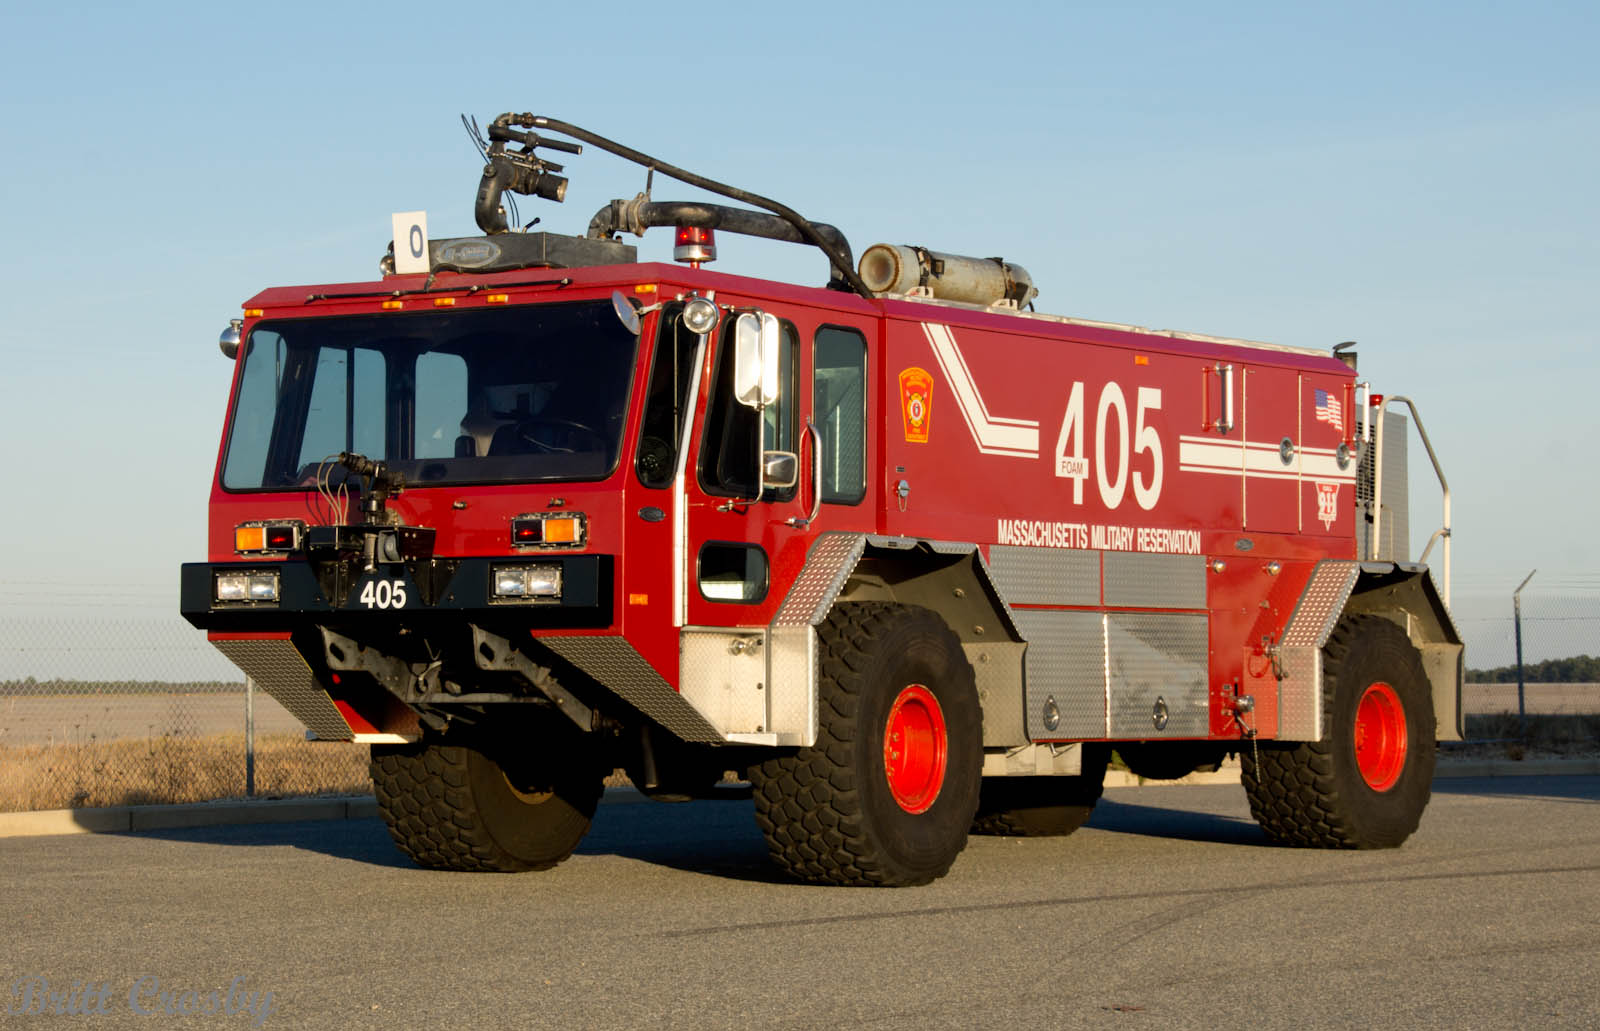 Arff Apparatus Diagram Of Pierce Fire Engine 1993 Emergency One Titan Truck 1500 200 Refurbed In 2003 Acquired By Mmr 2012 Replaced 1986 Oshkosh P19